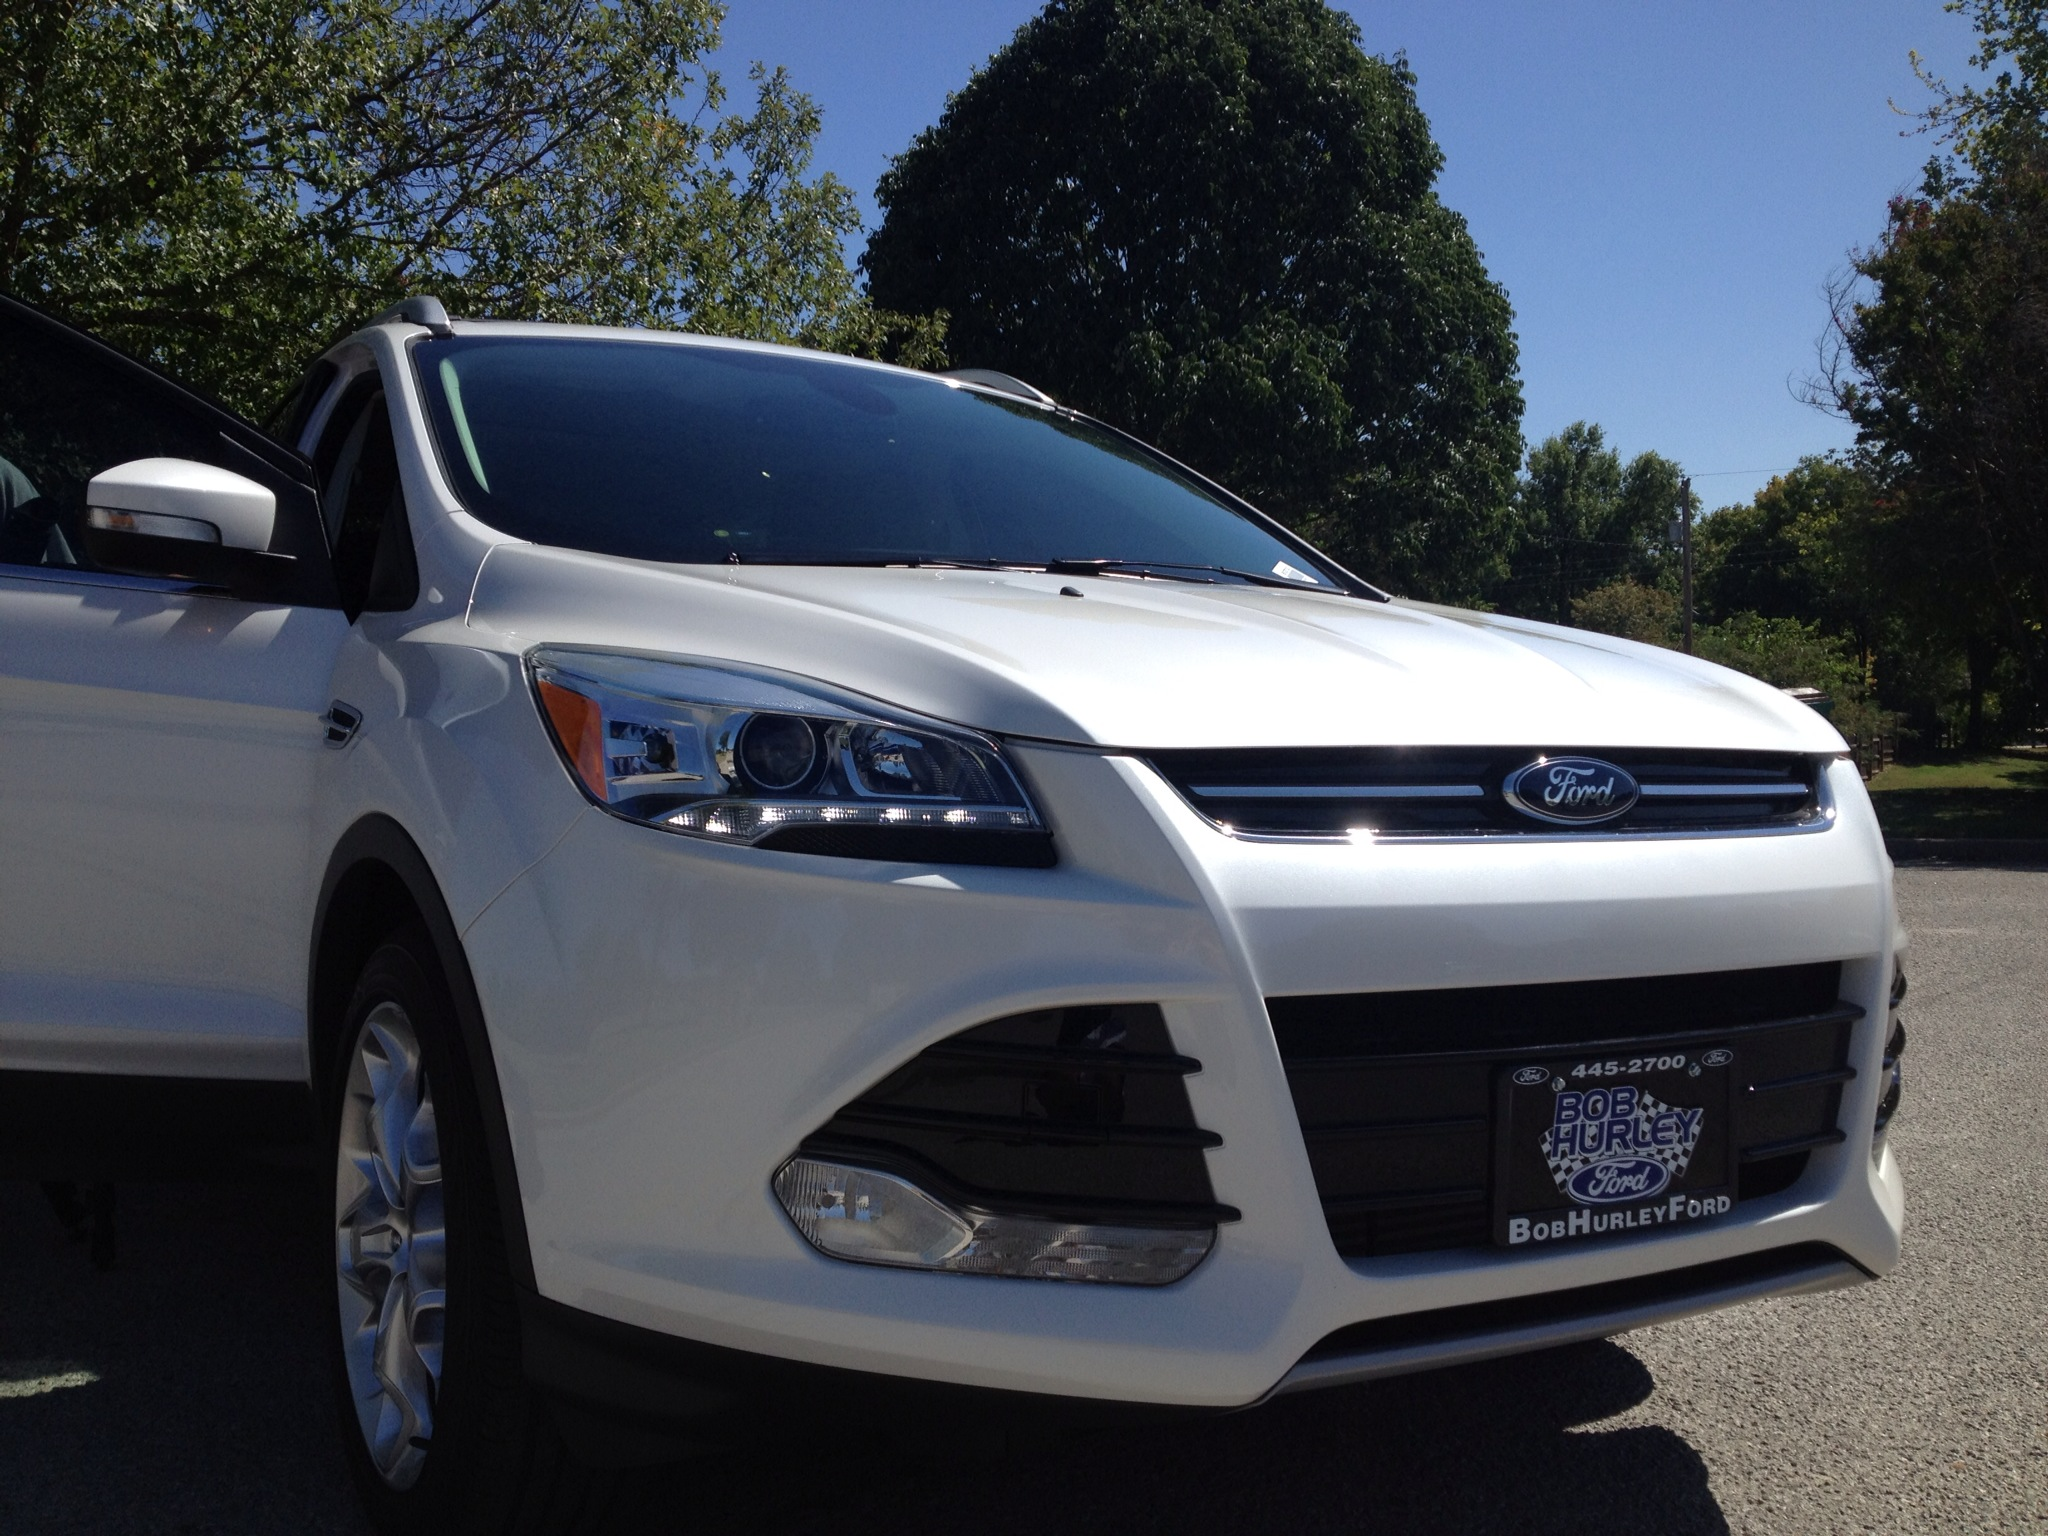 The 2013 Ford Escape from Bob Hurley Ford